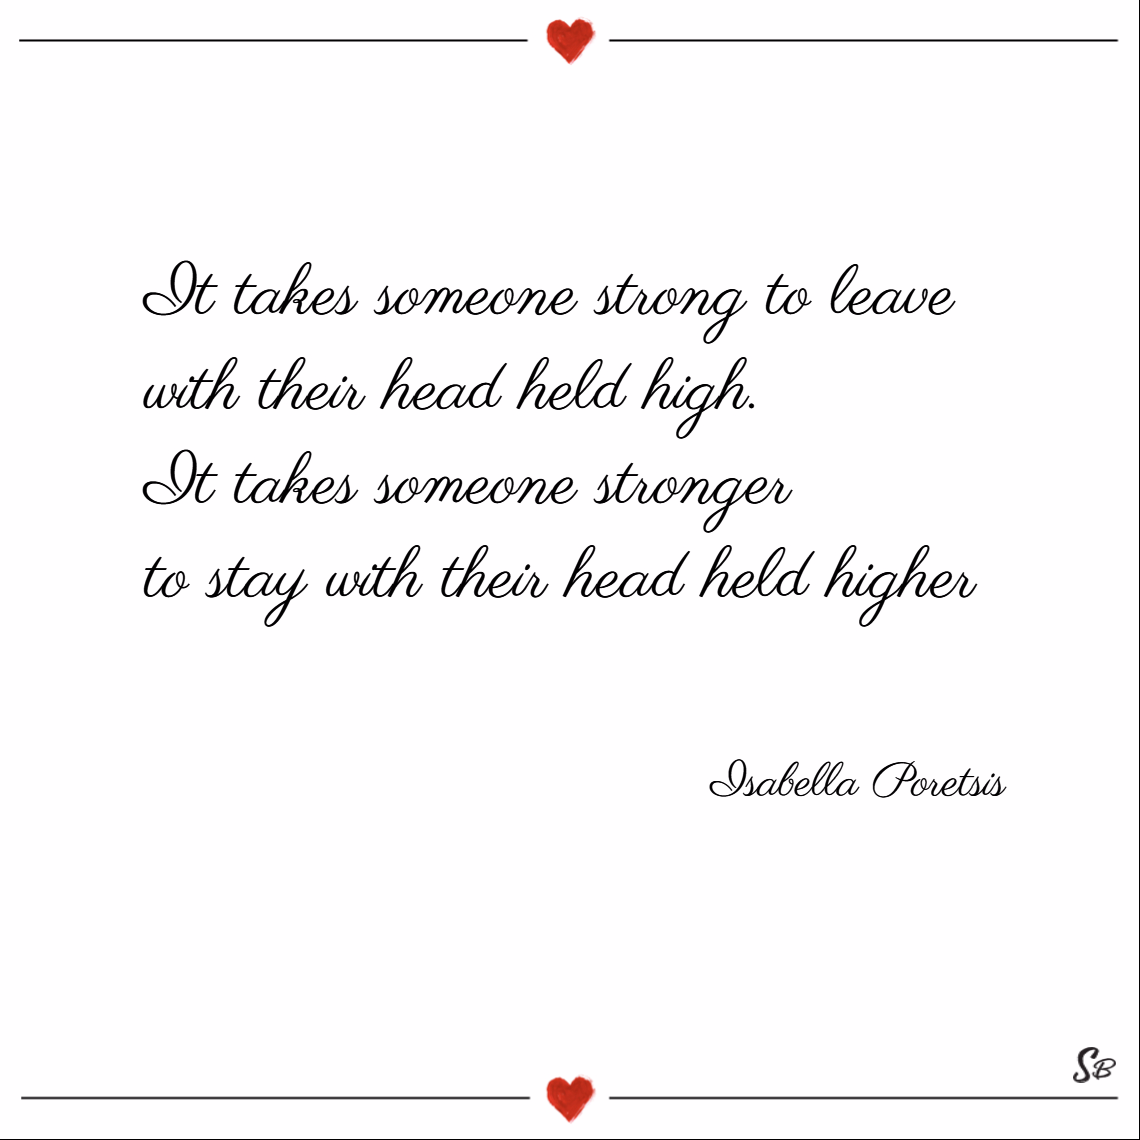 It takes someone strong to leave with their head held high. it takes someone stronger to stay with their head held higher. – isabella poretsis